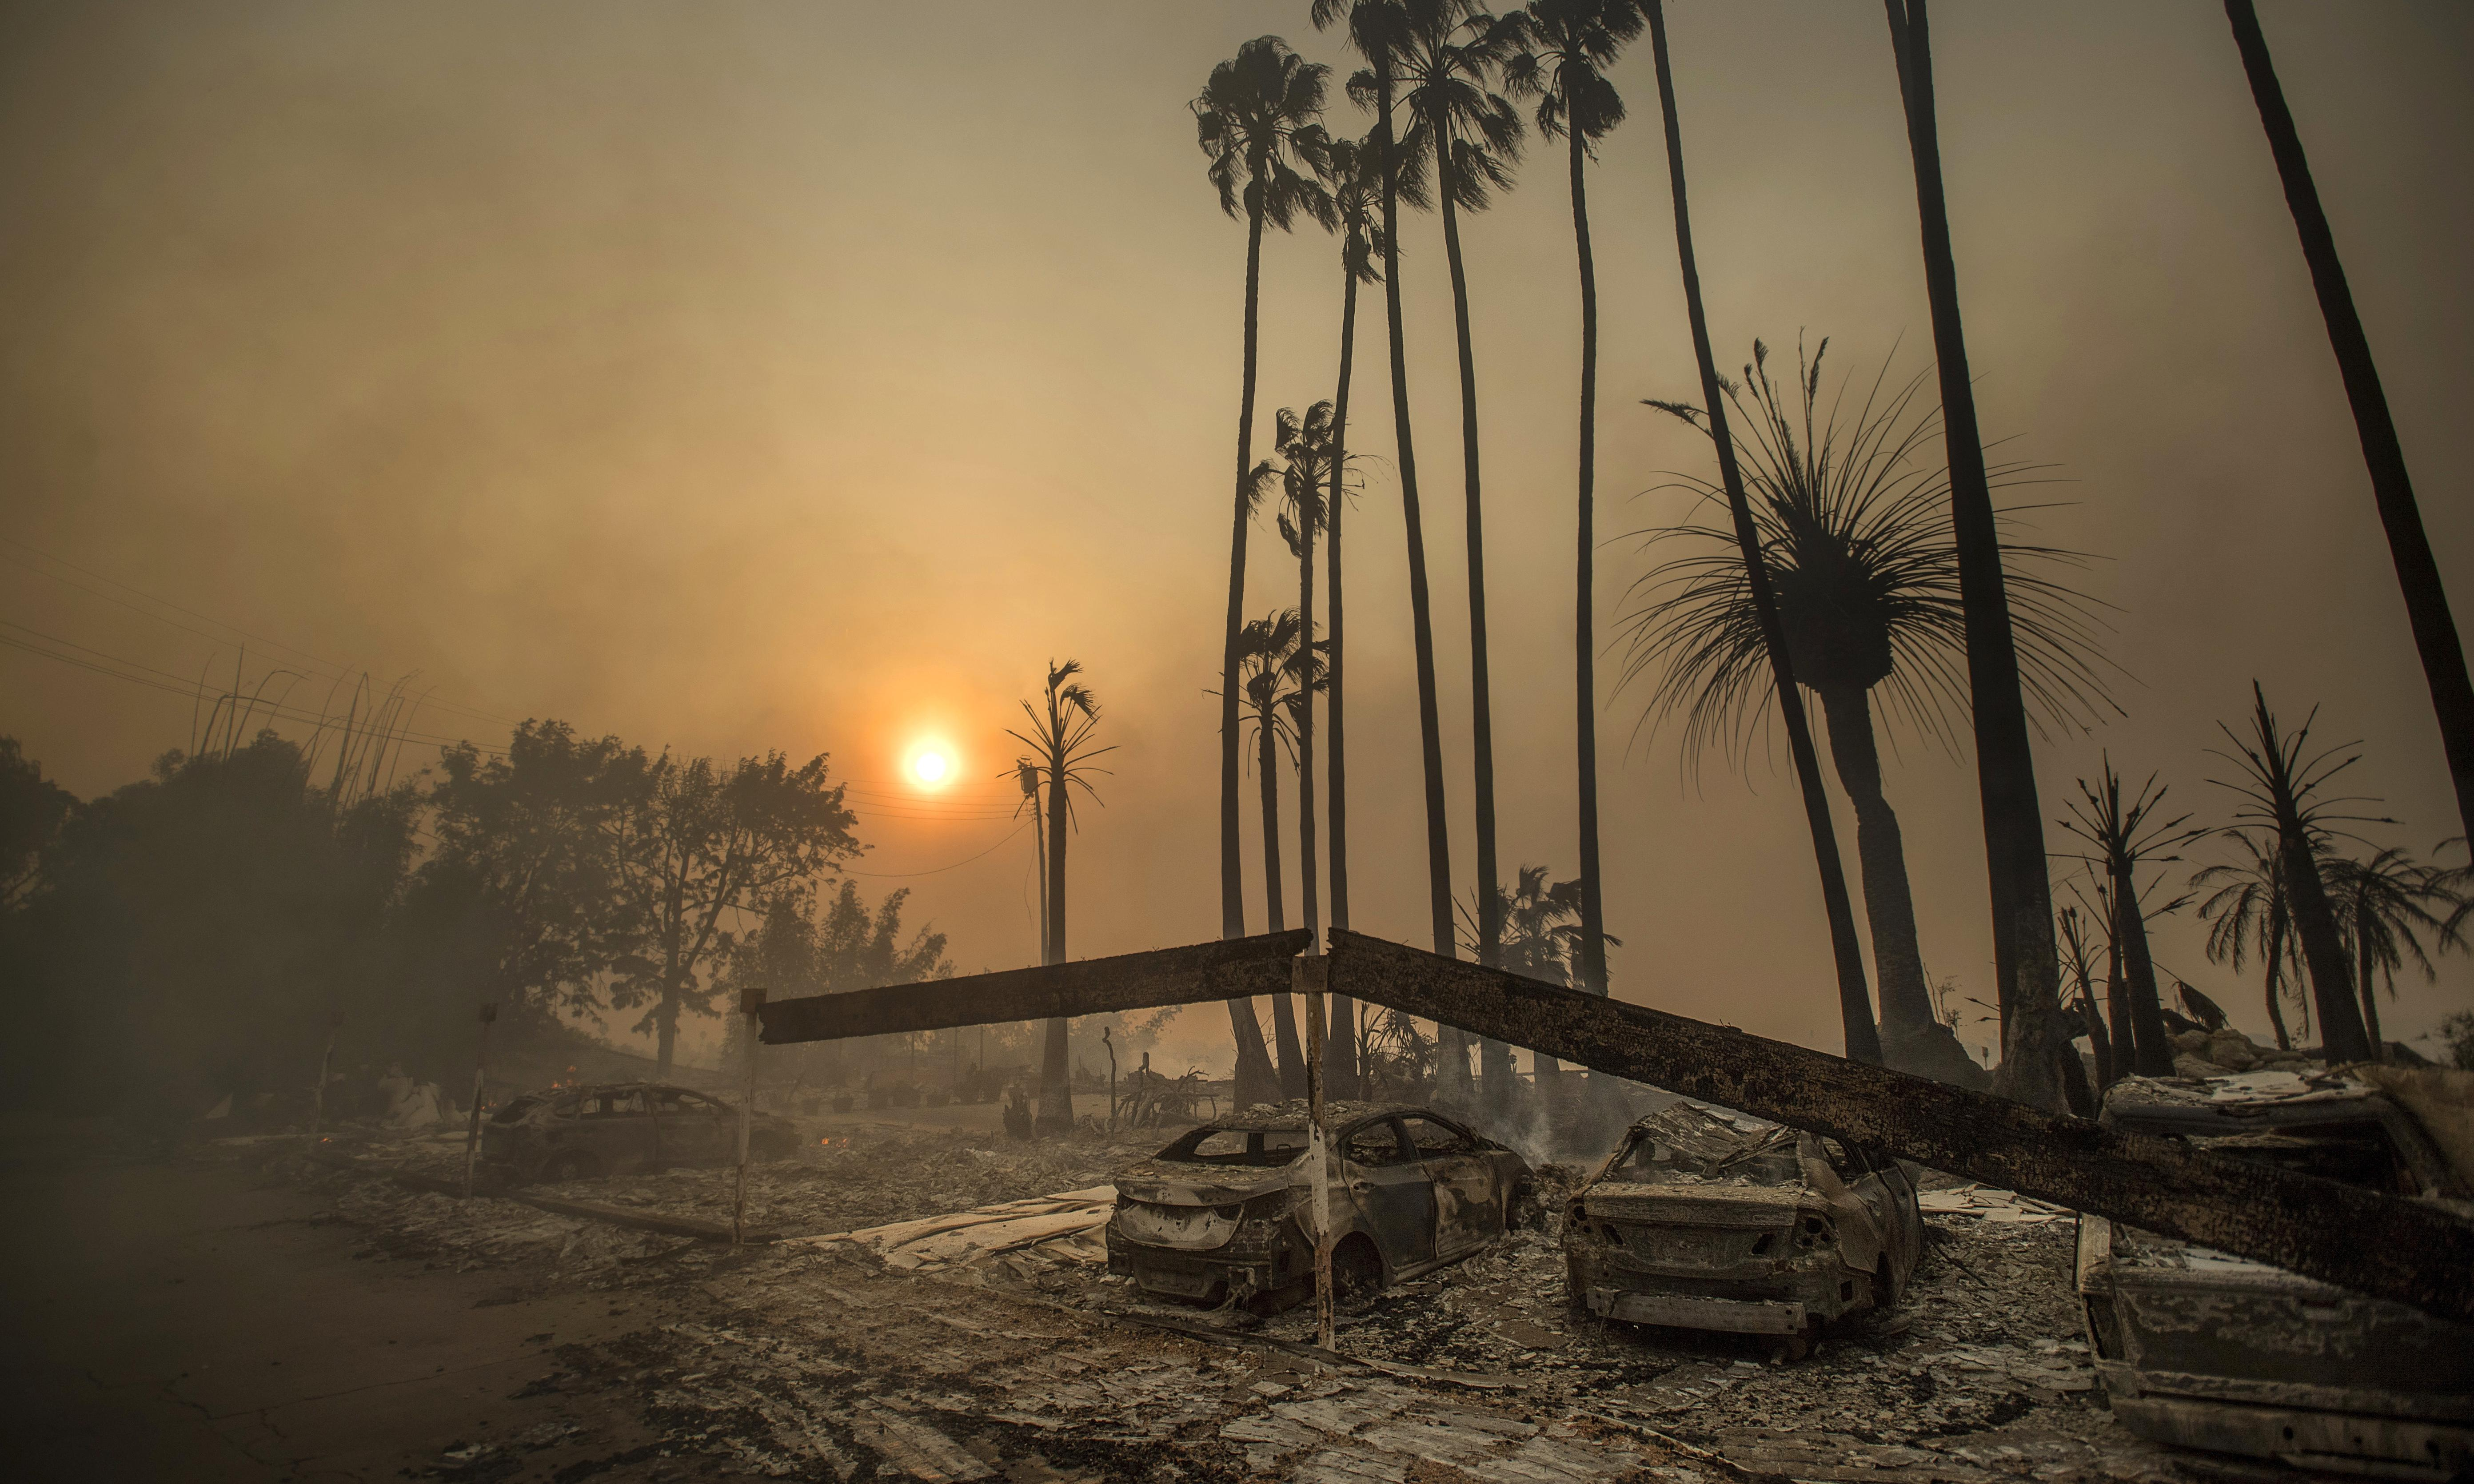 US disaster agency exposed private data of 2.3m hurricane and wildfire survivors